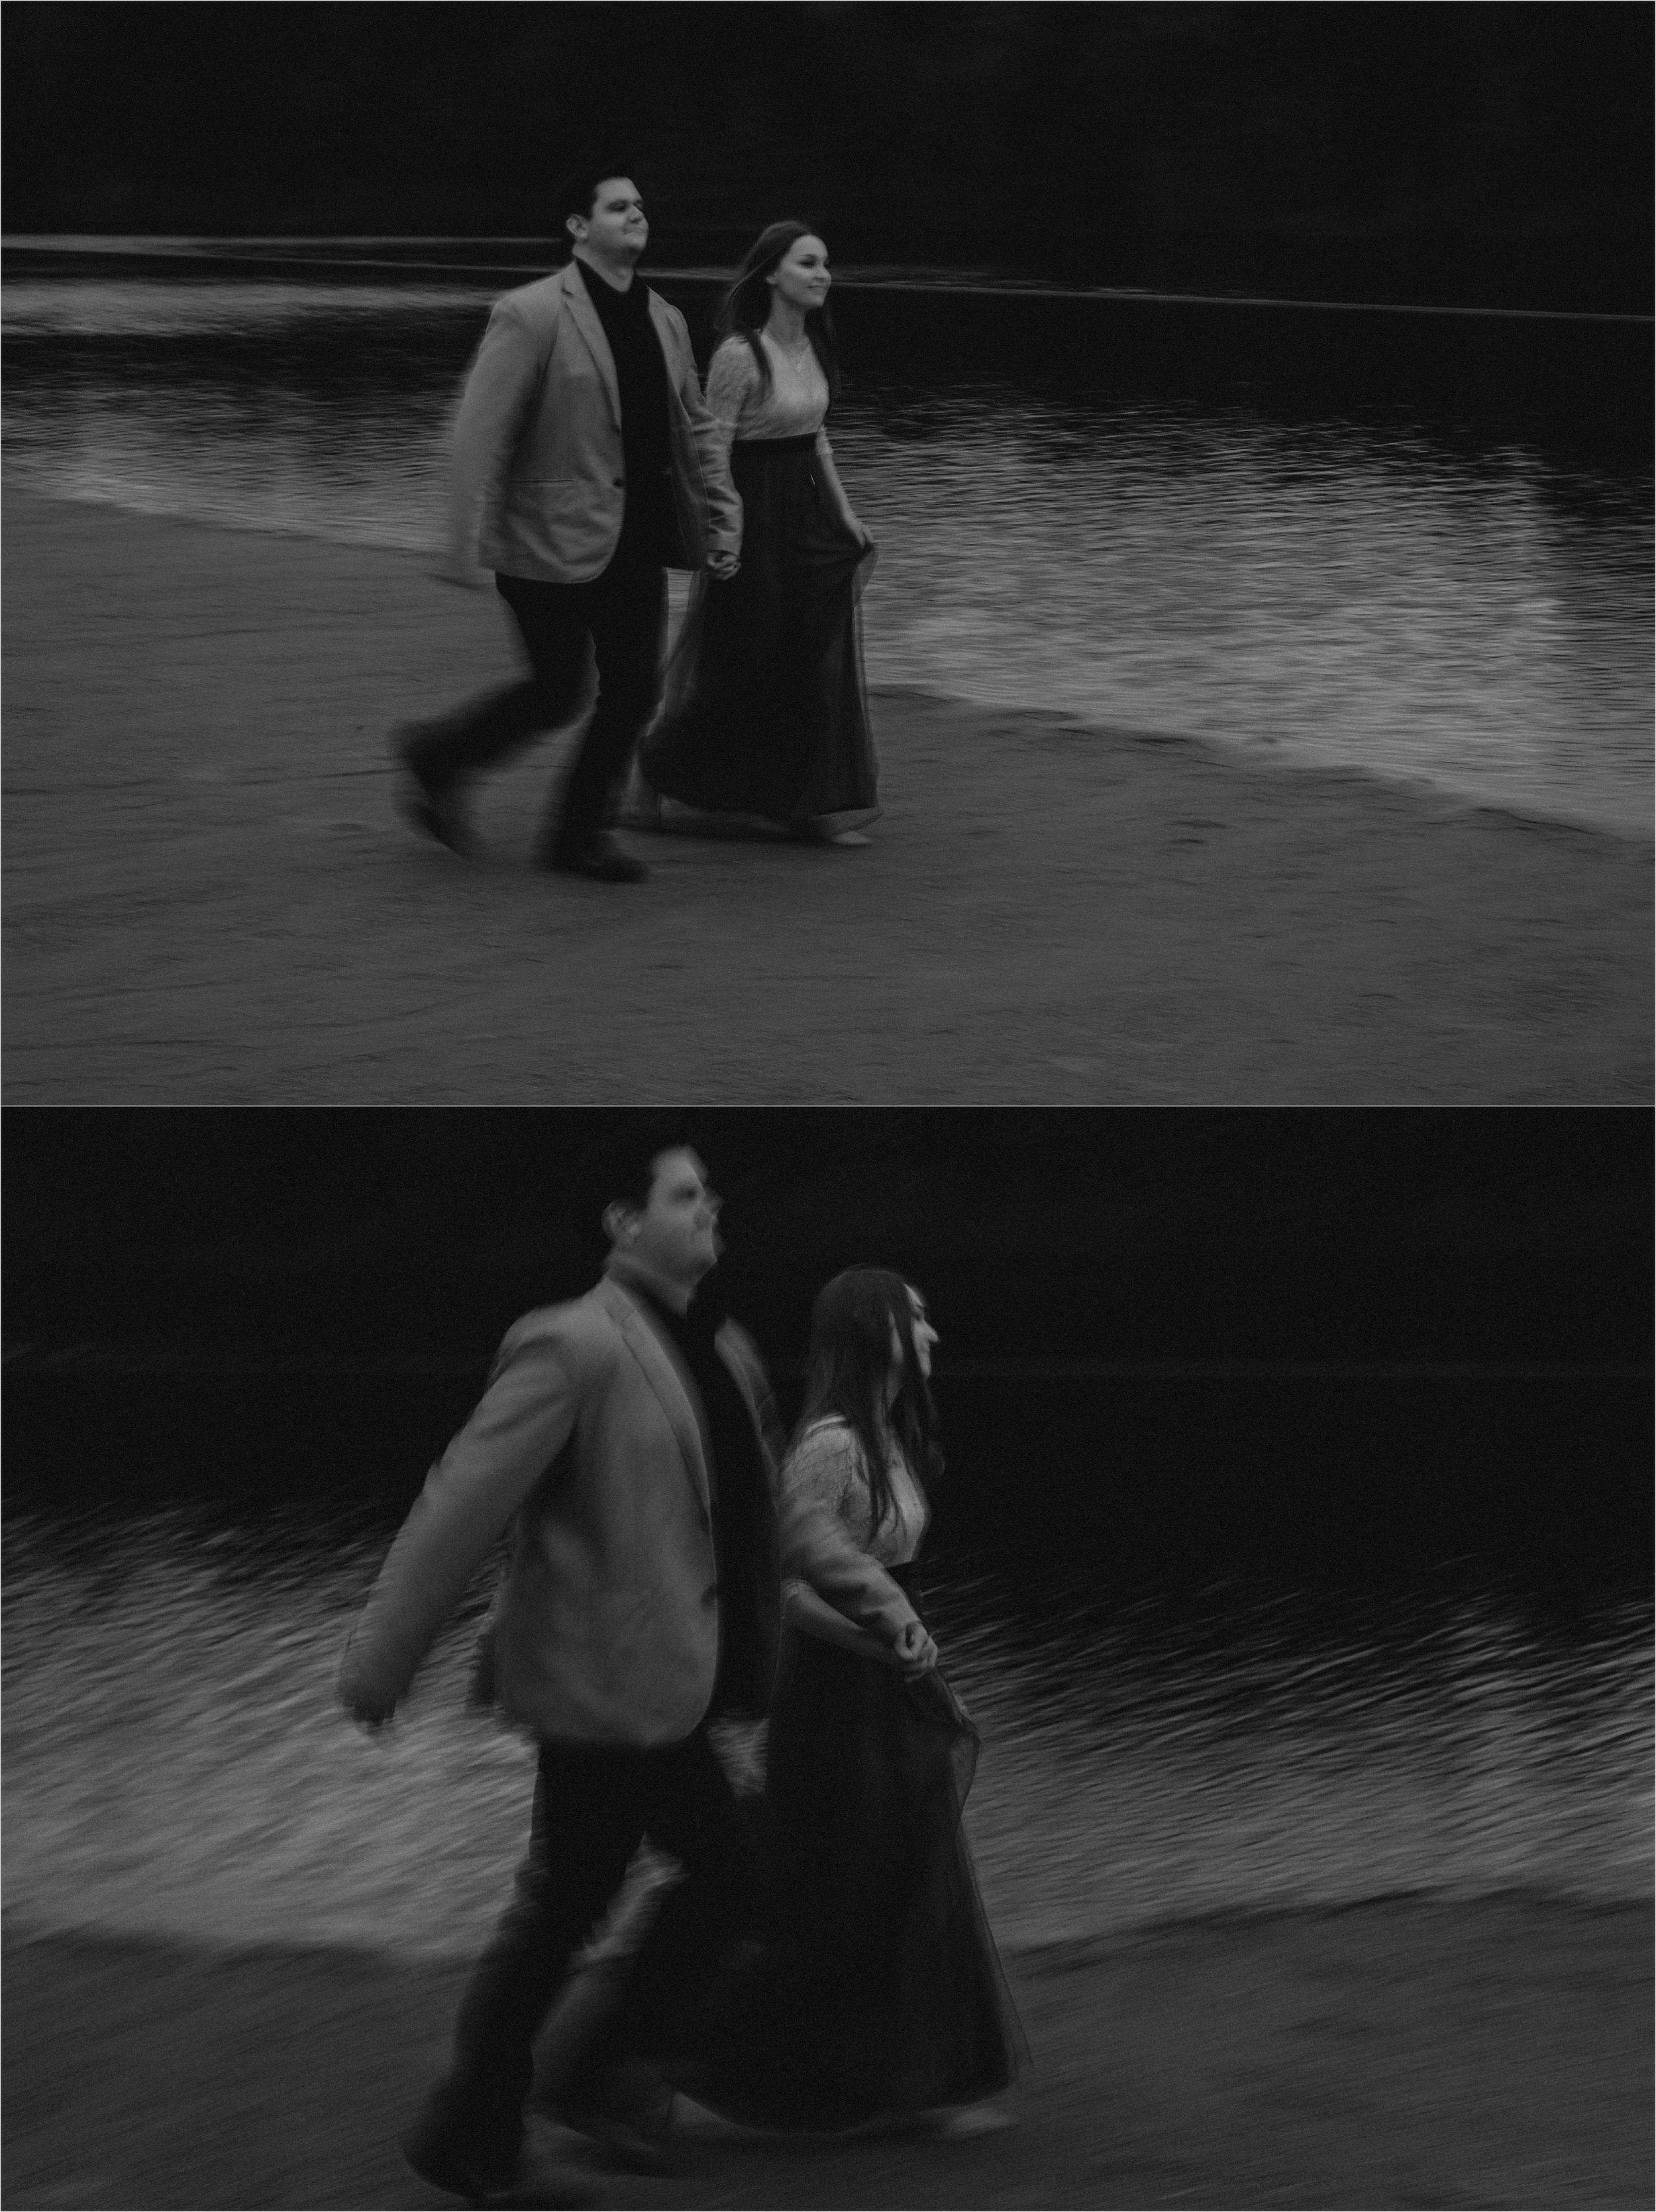 Blurred movement of a couple running on the beach at twilight